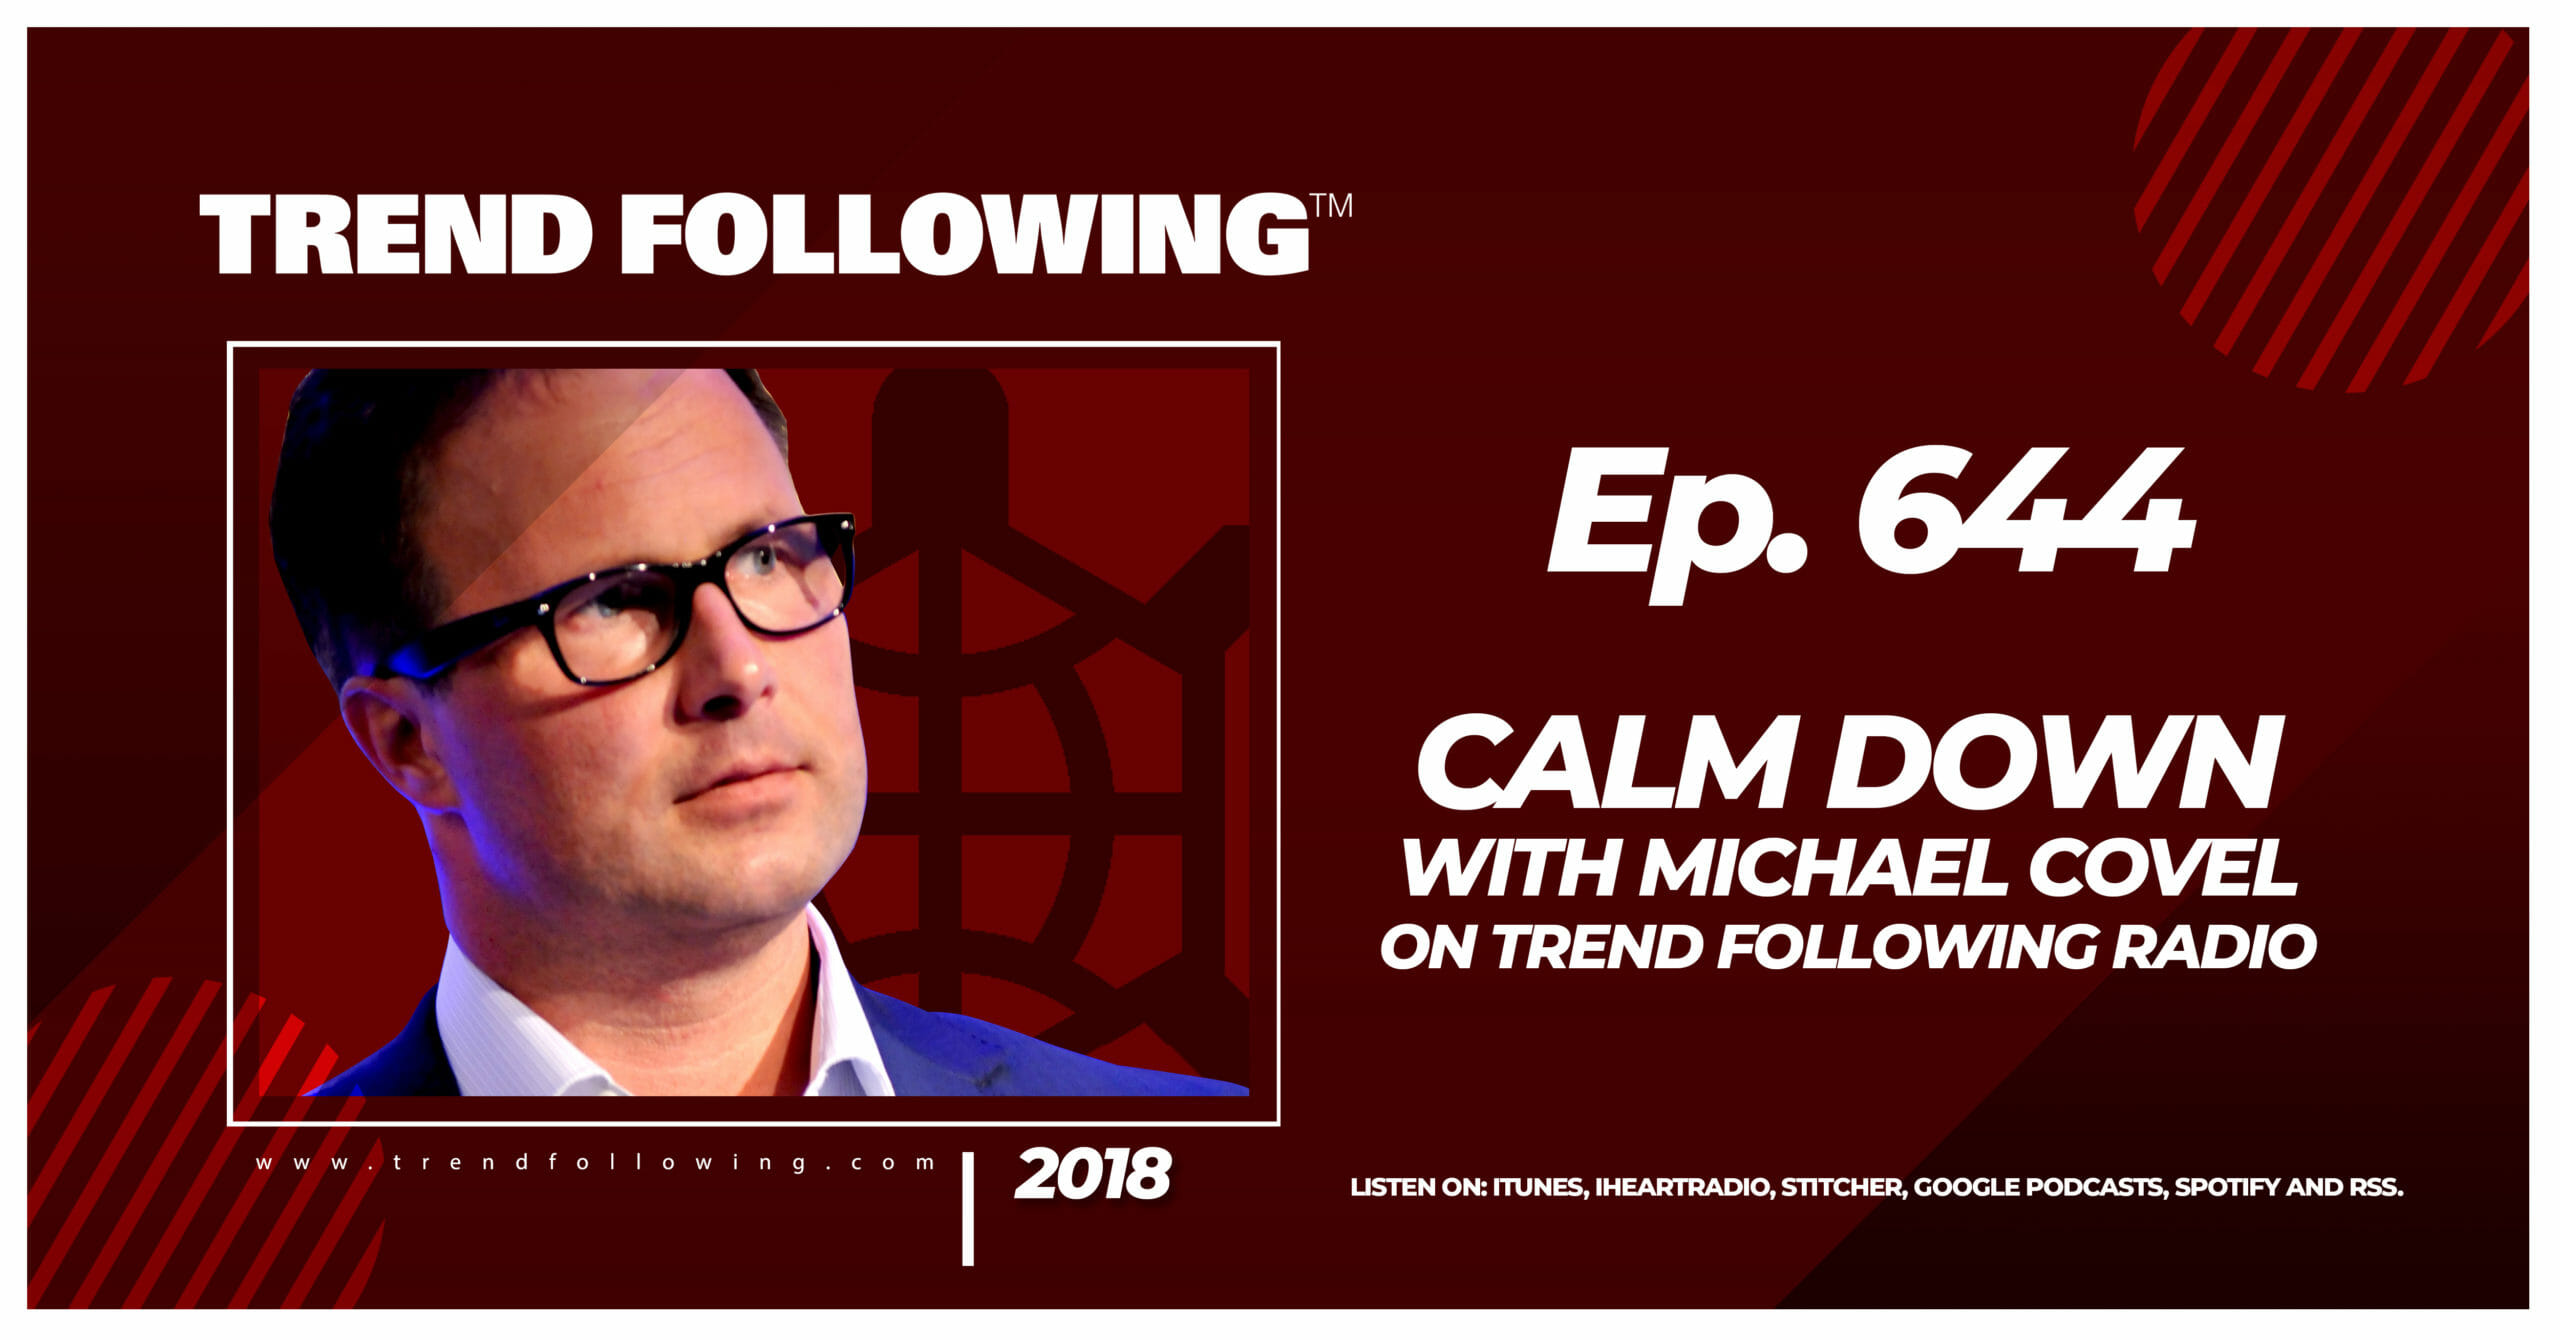 Calm Down with Michael Covel